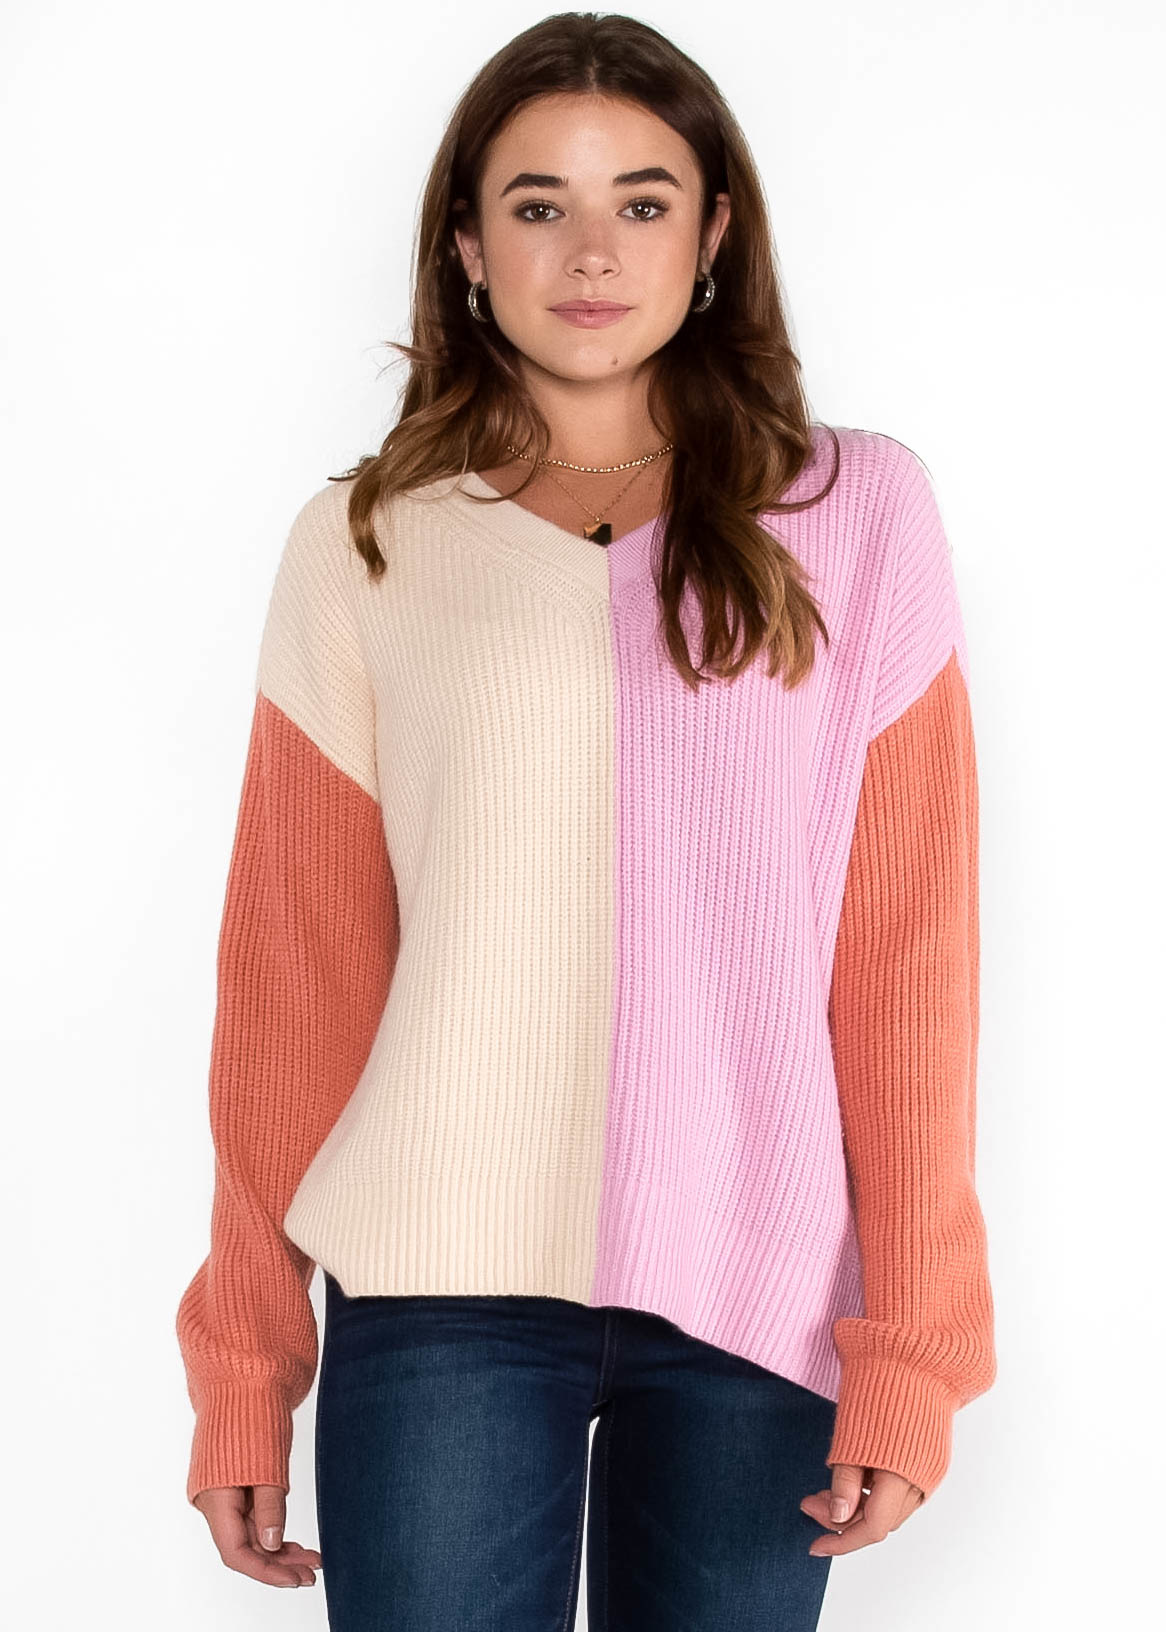 COOL CUES COLOR BLOCK SWEATER